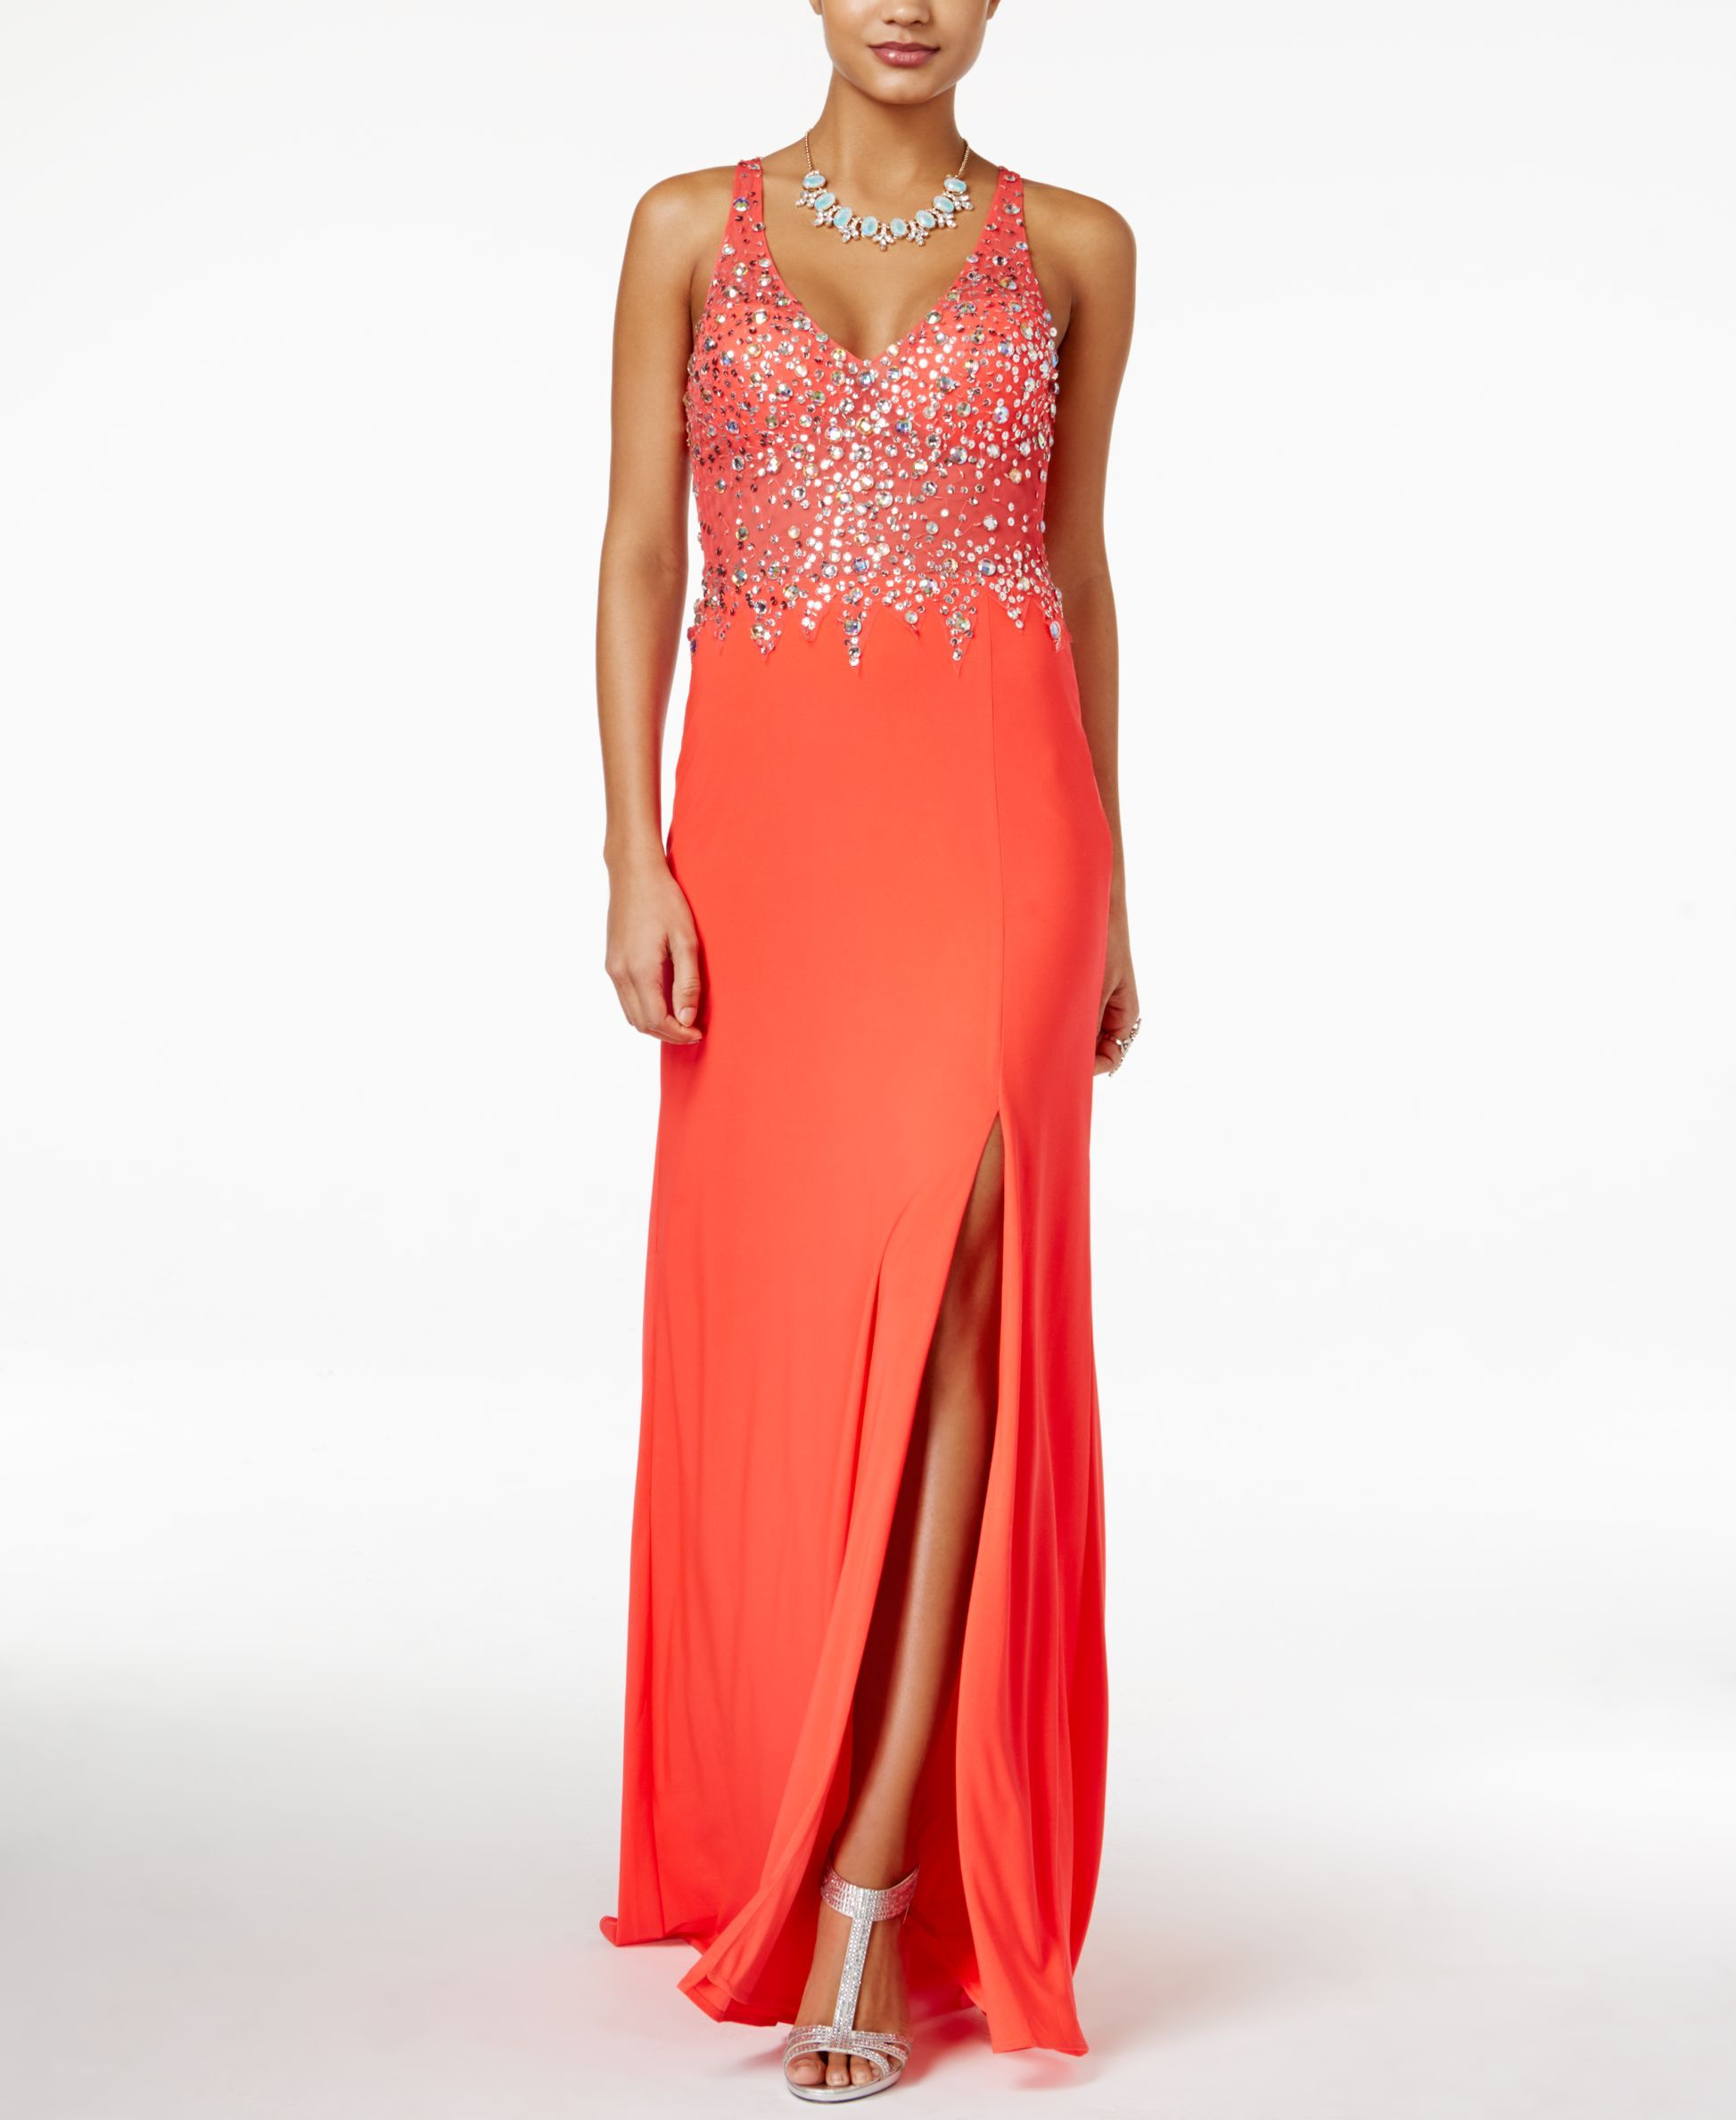 Blondie nites juniorsu embellished frontslit gown products